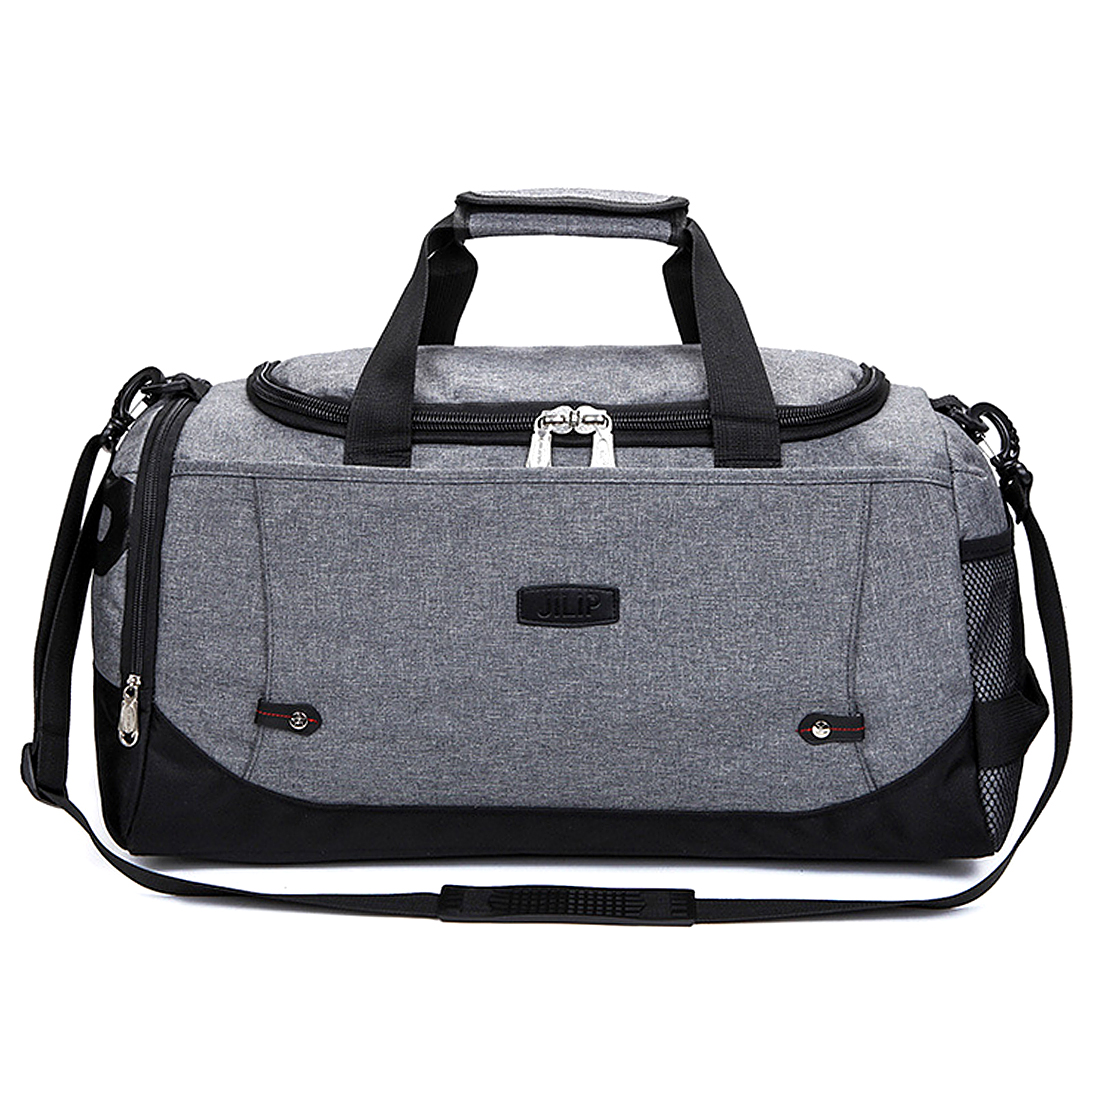 2 Color 2018 Men Travel Bag With Big Capacity Polyester Casual Handbag Business Trip Single Shoulder&Cross Body Travel Bag Hot